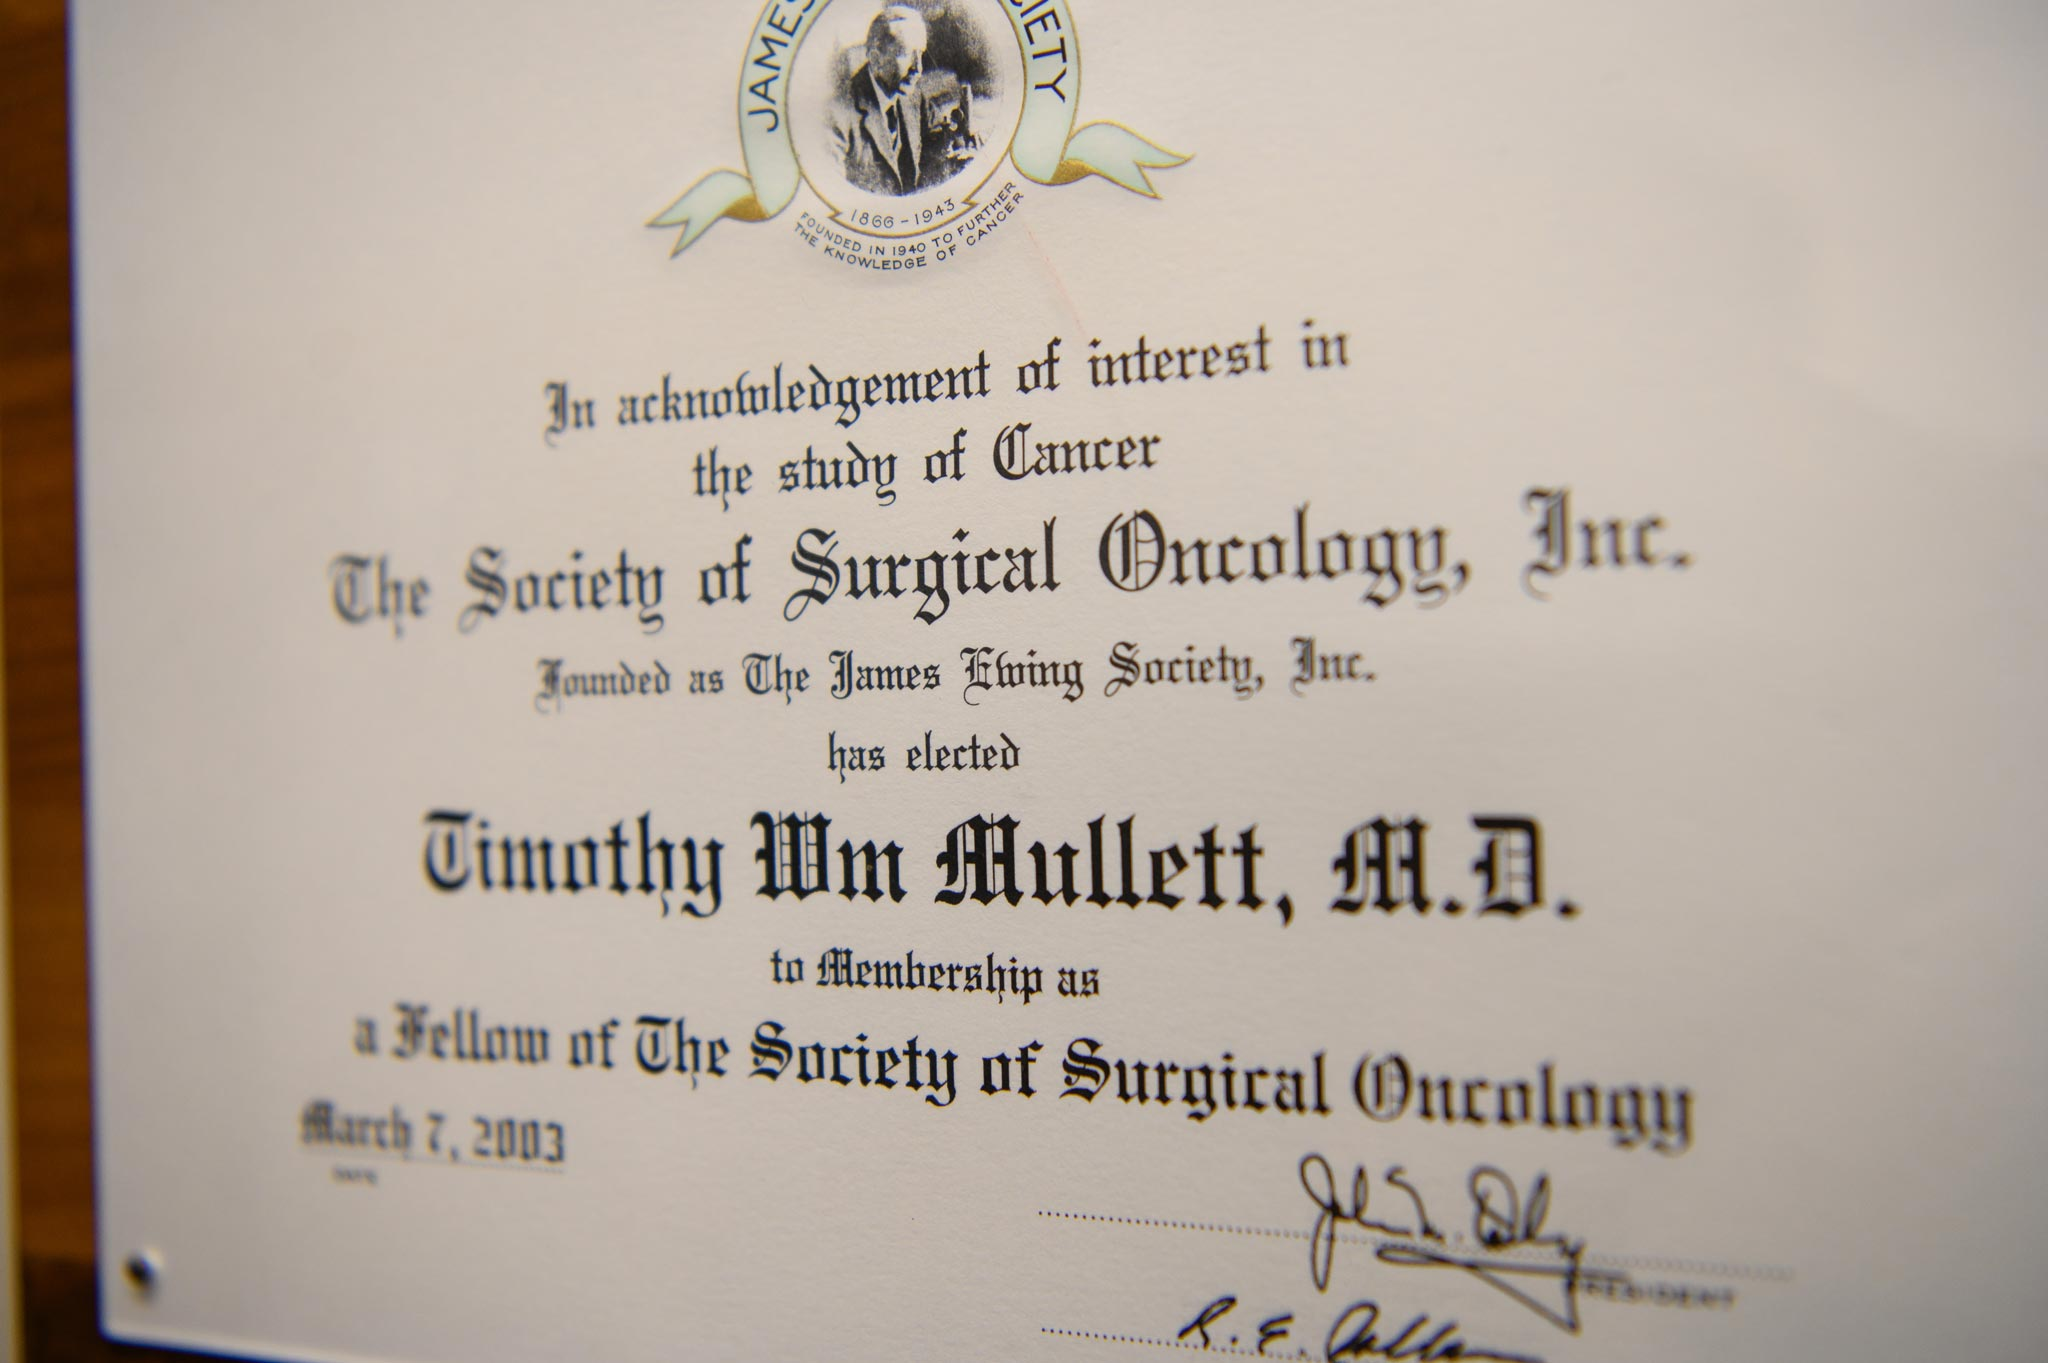 Dr. Mullett's Oncology degree, framed and hanging on the wall.